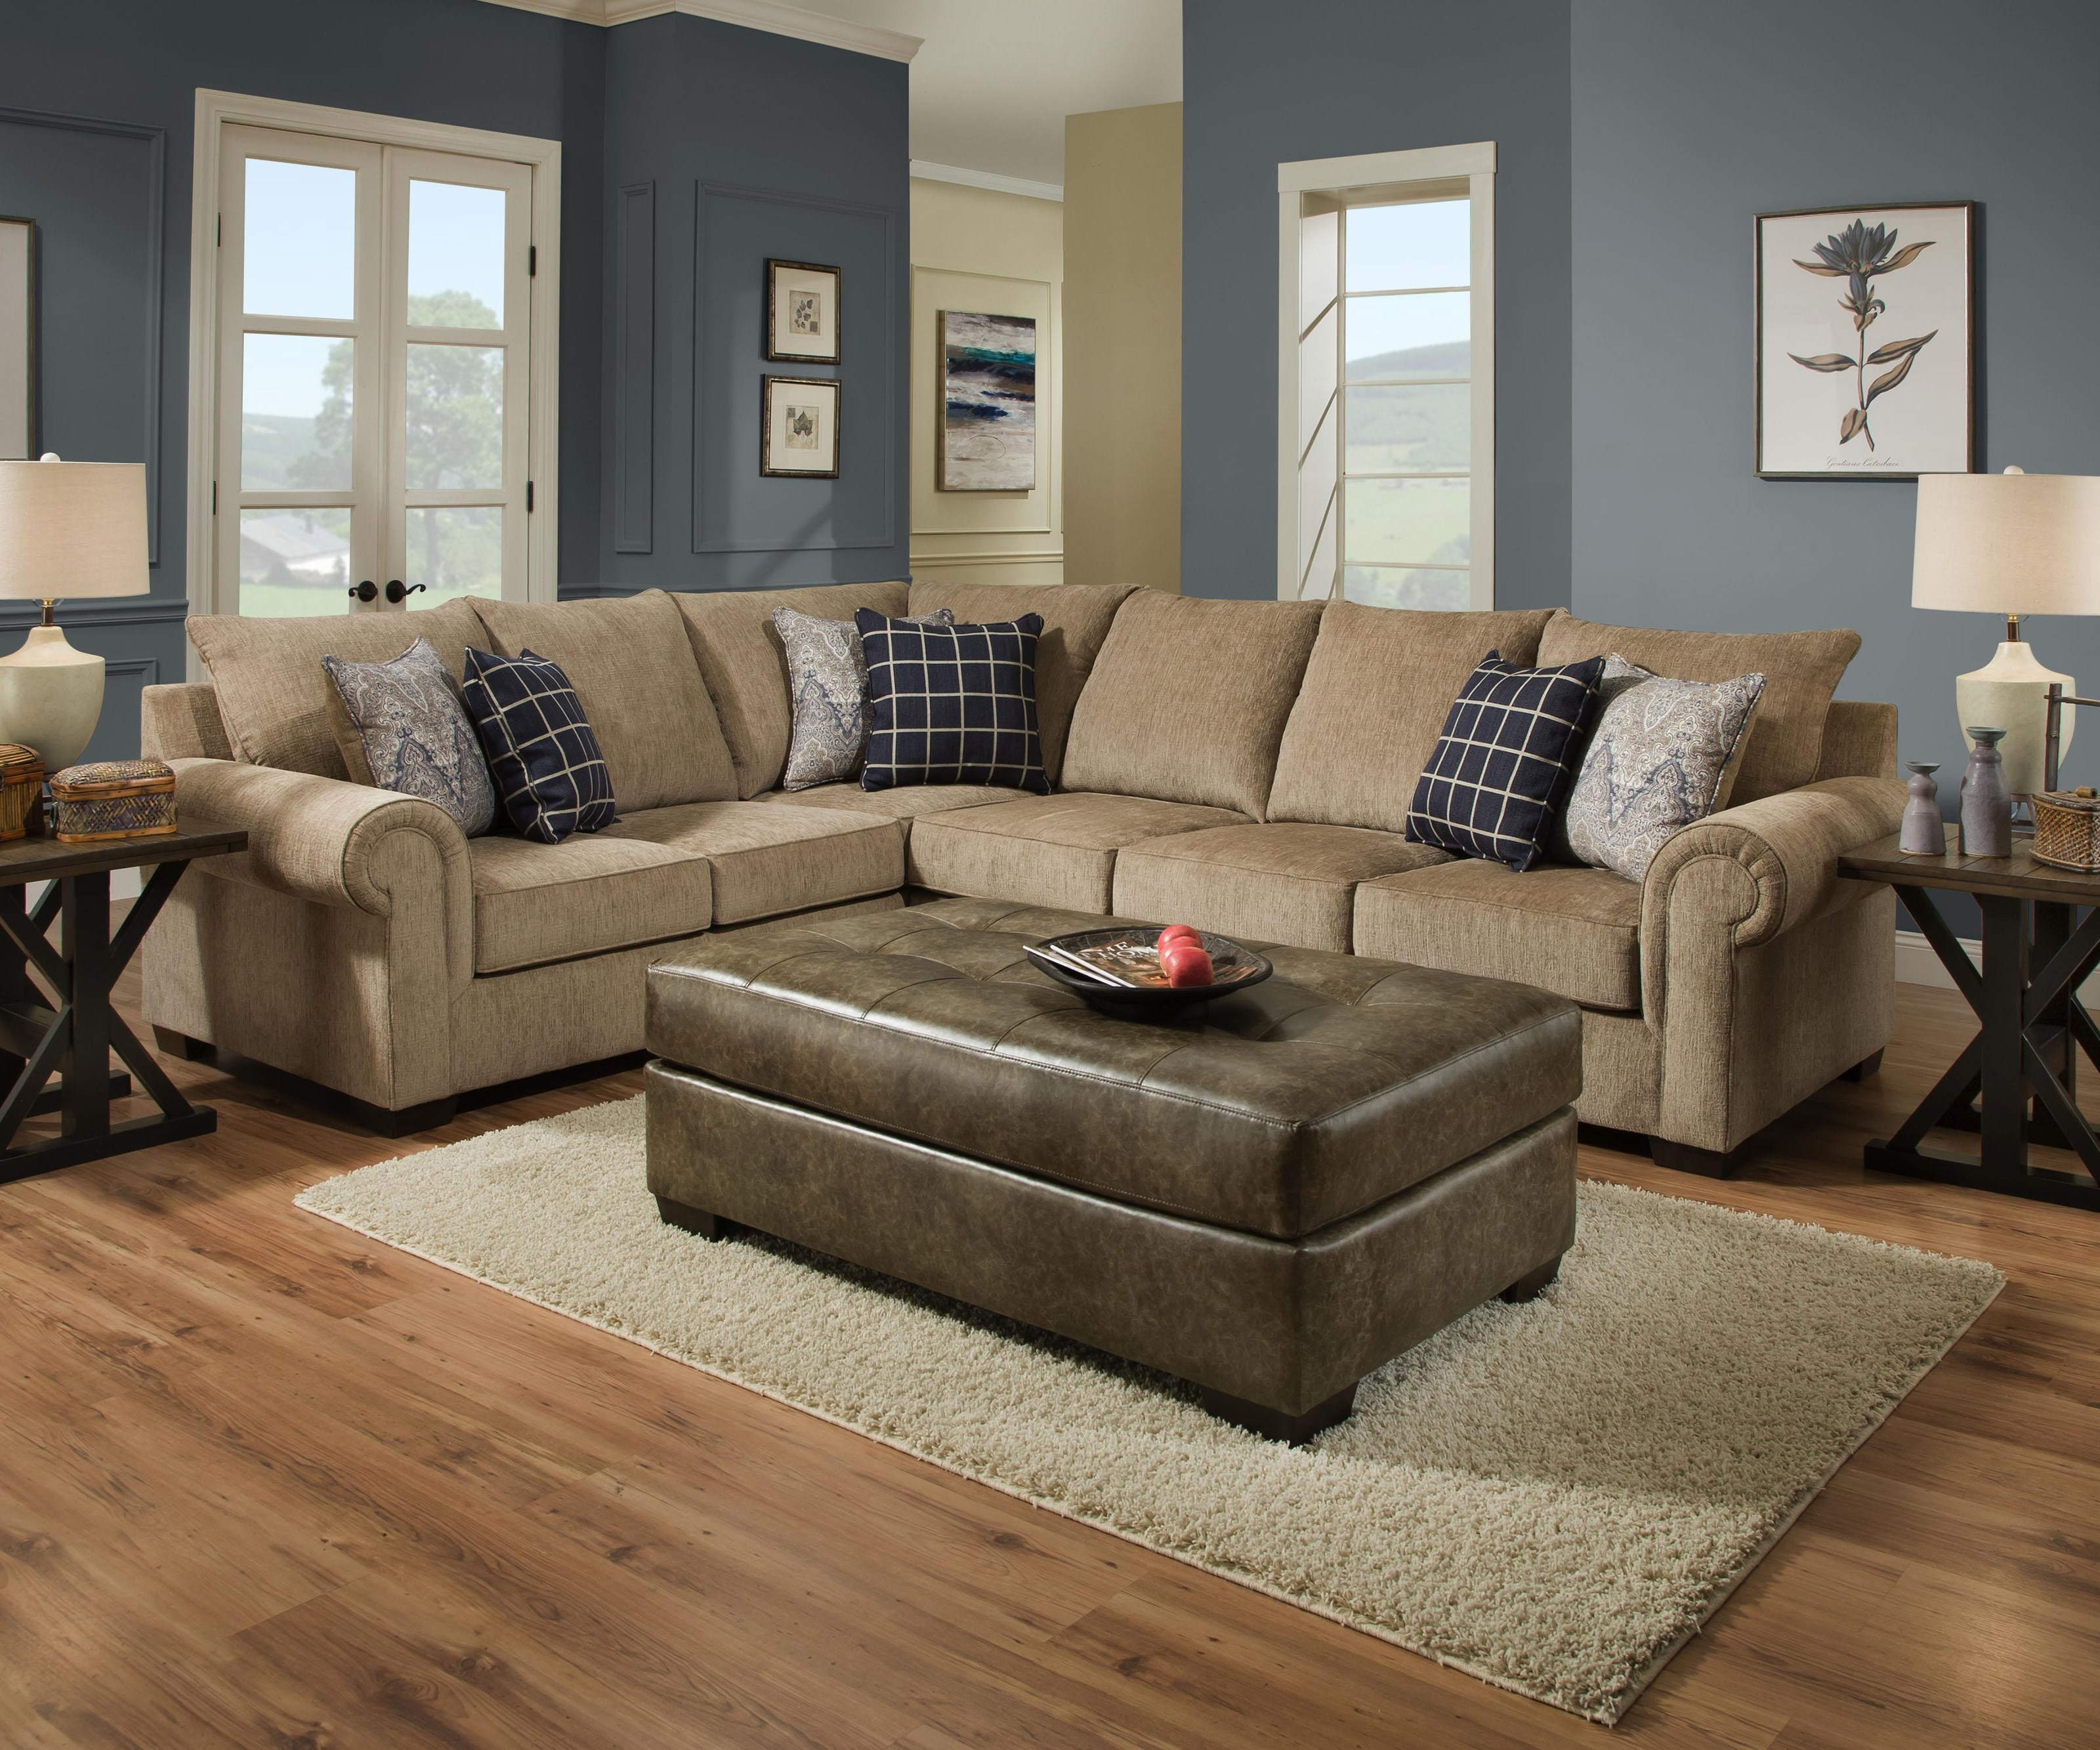 Simmons Upholstery 7592BR Beautyrest Csuhions : simmons sectional sofa - Sectionals, Sofas & Couches